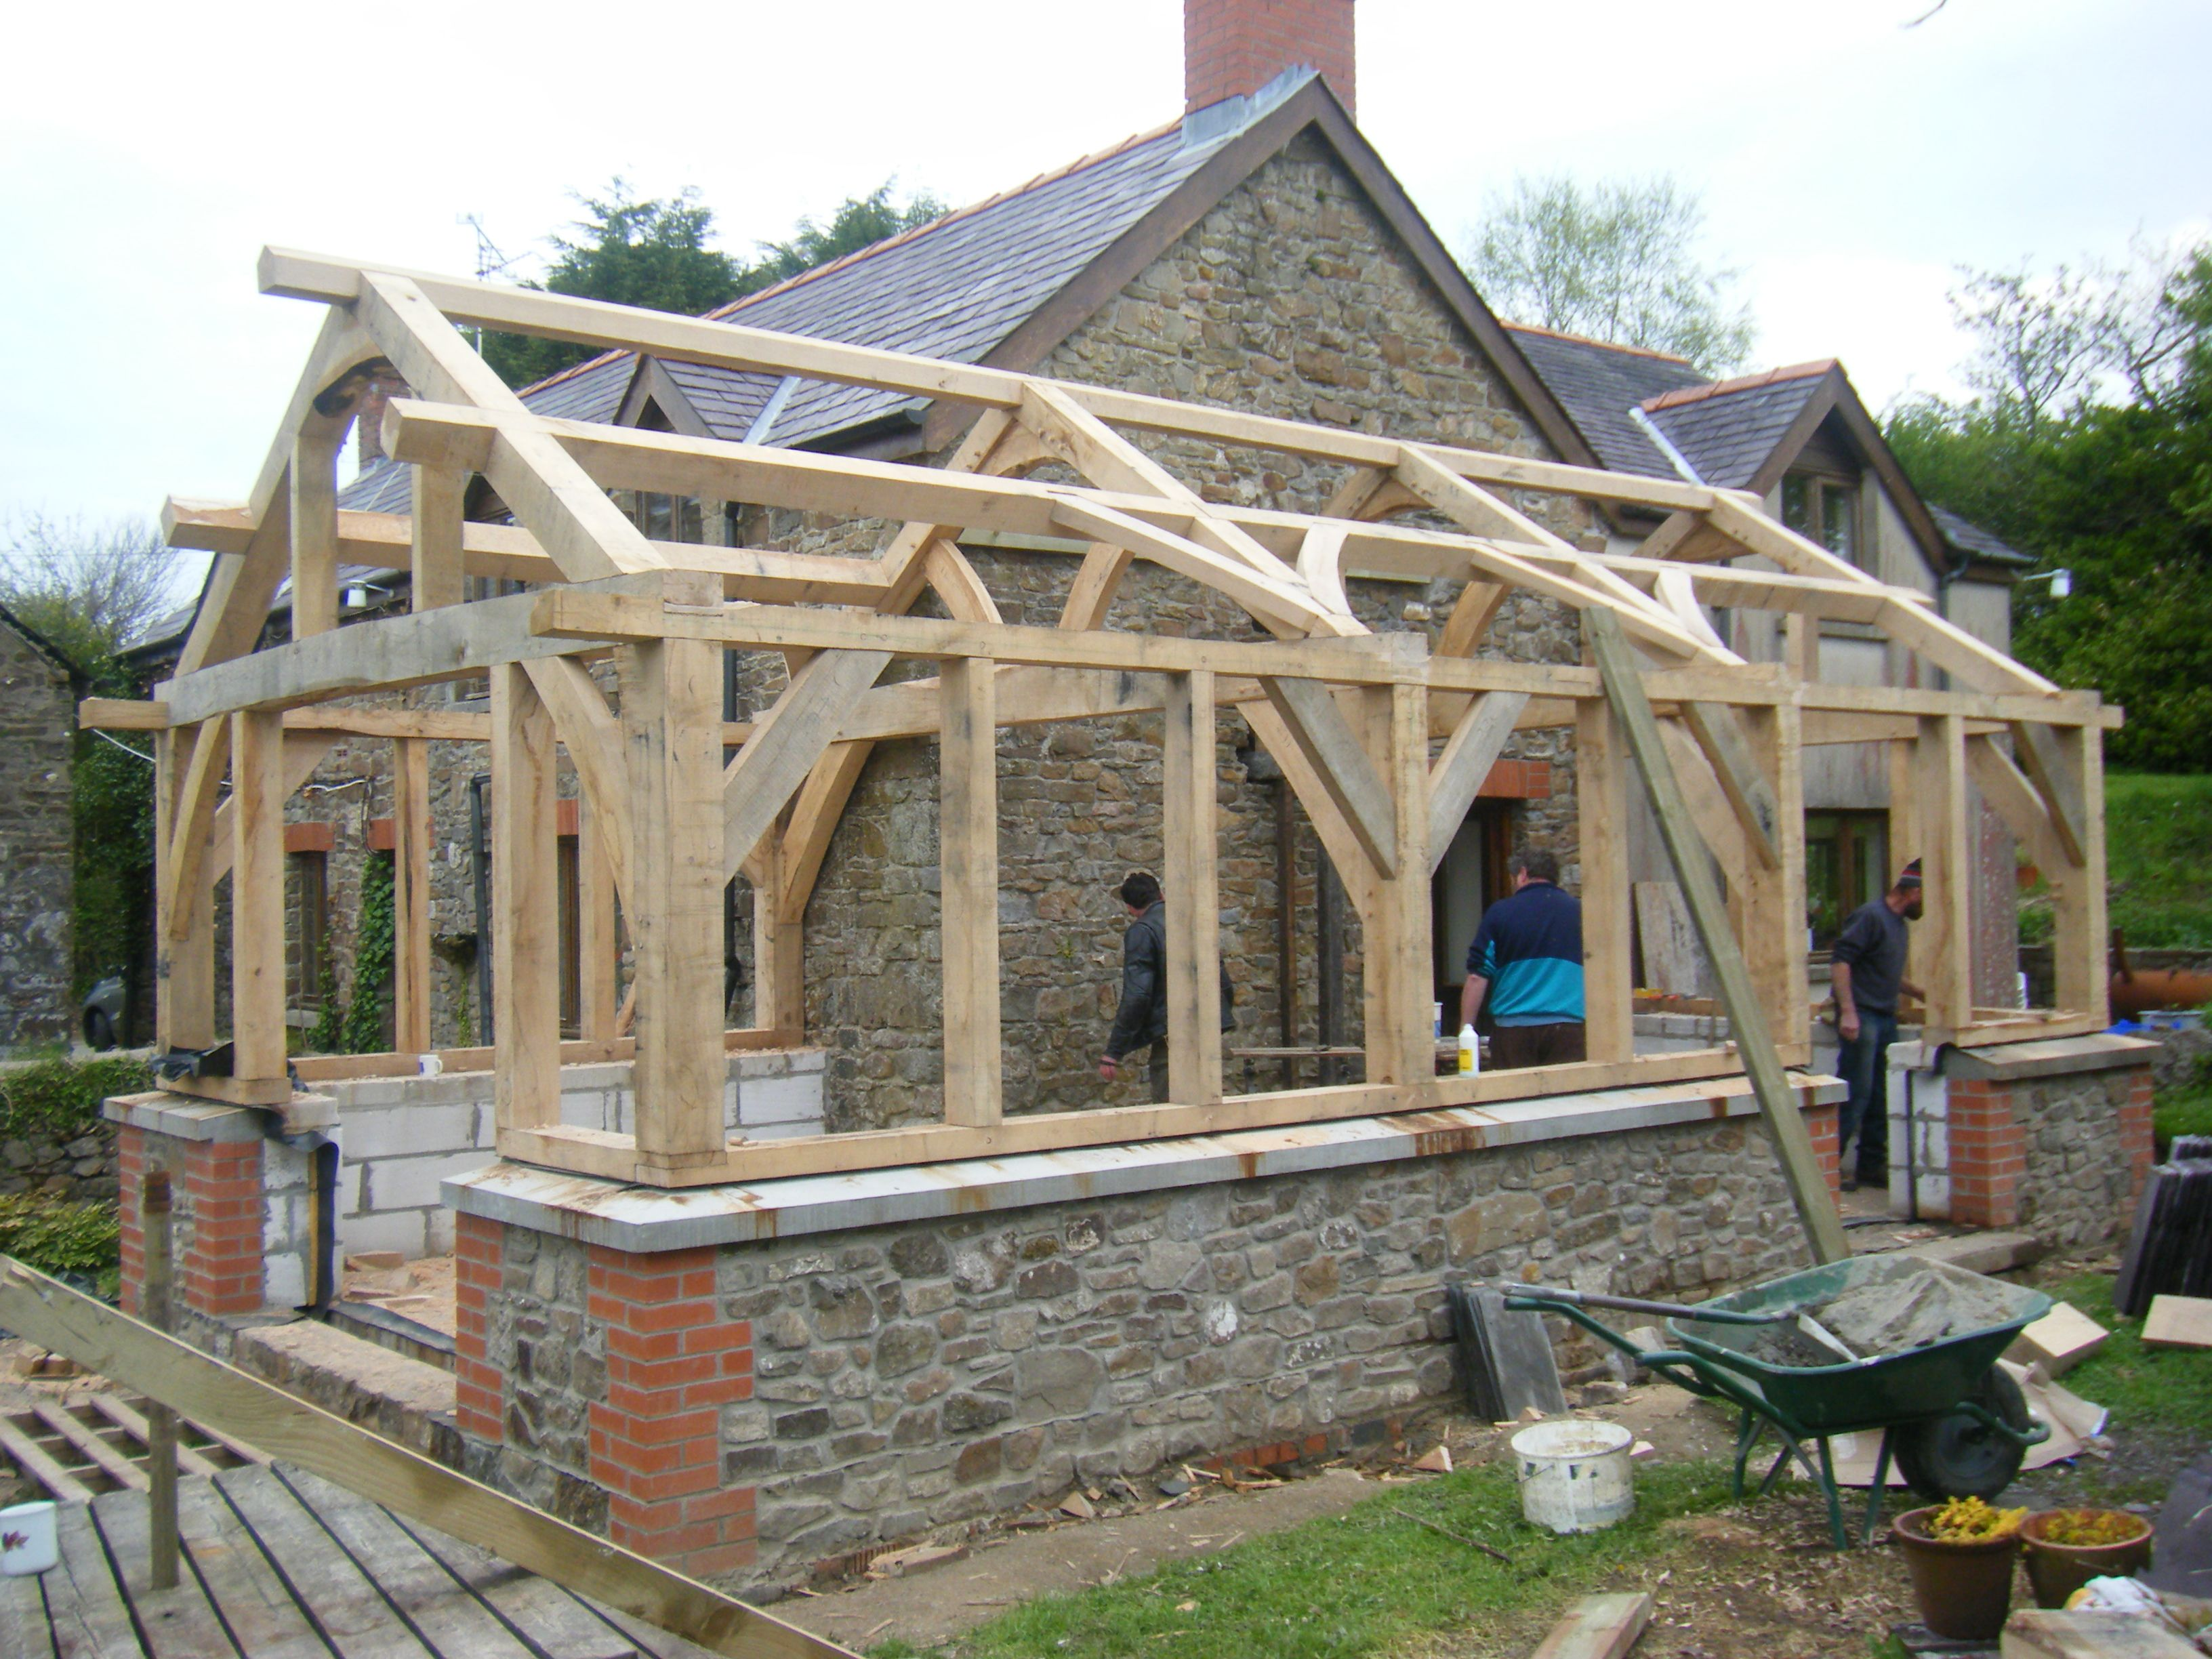 Timber framing construction is a method of building with for Timber frame house construction